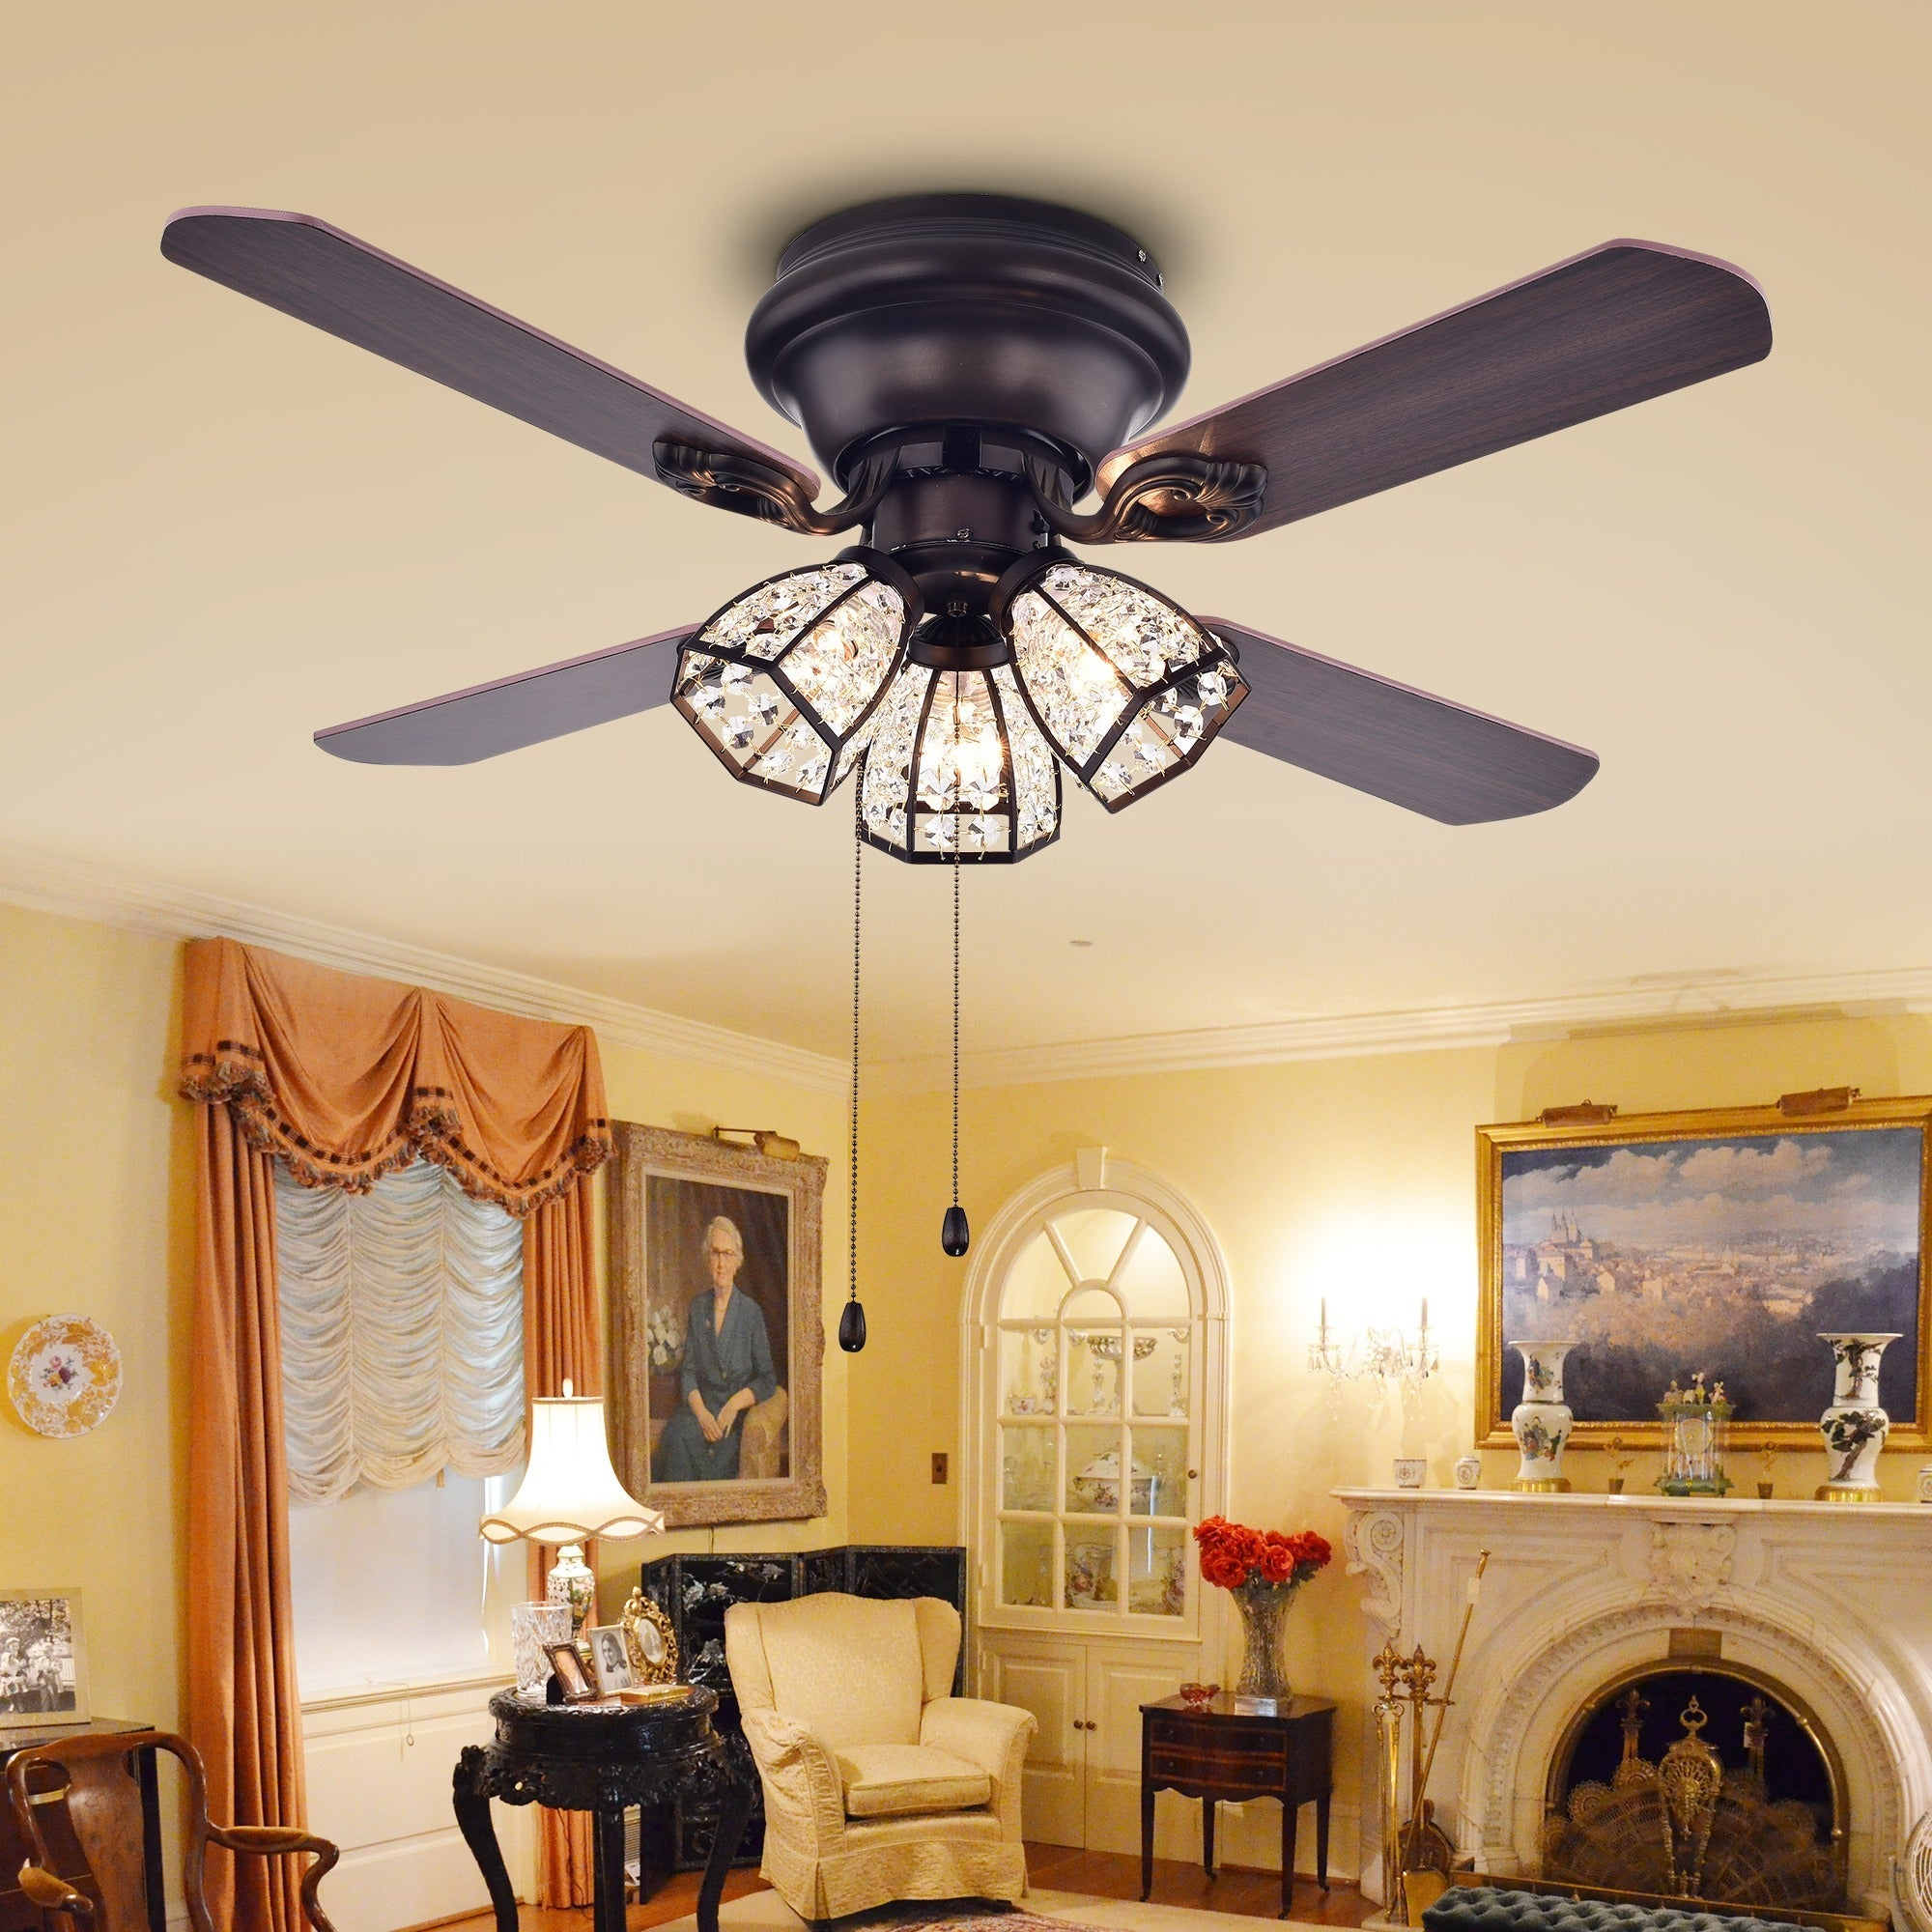 Warehouse Of Tiffany Tarudor 3 Light Crystal Dark Wood 4 Blade 42 Inch Ceiling  Fan With Antique Bronze Brass Housing   Free Shipping Today   Overstock    ...